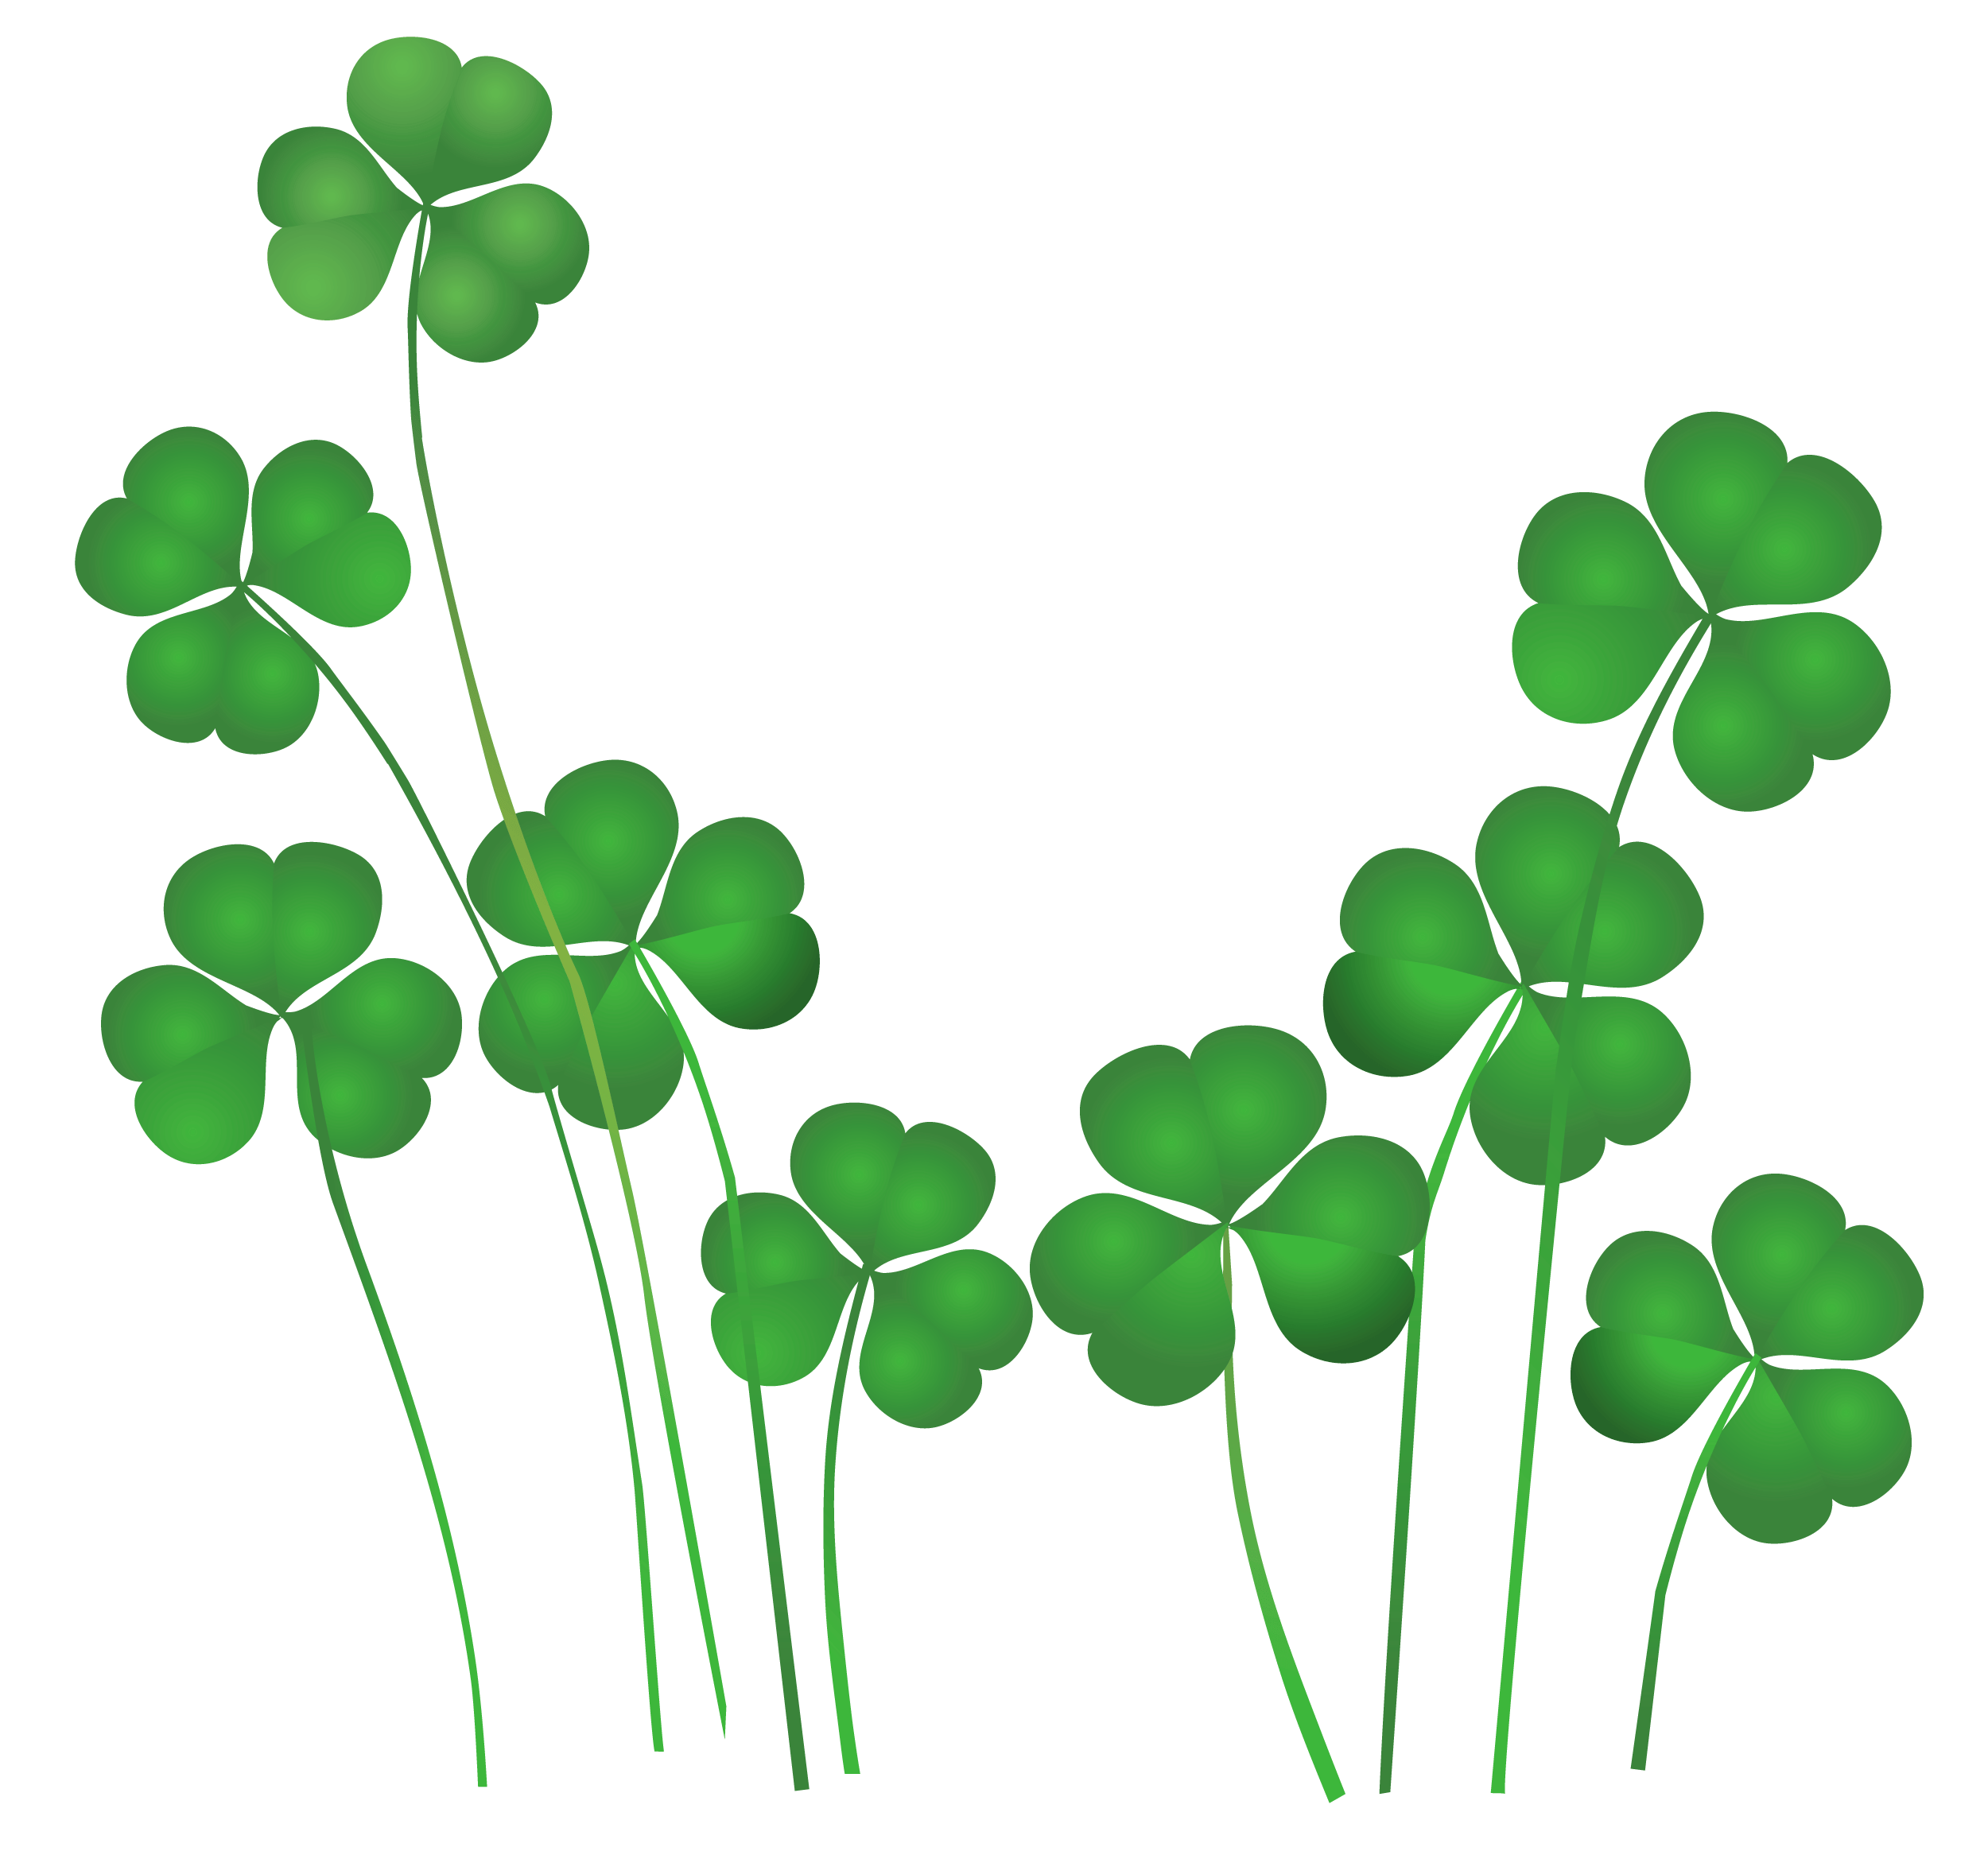 St patrick's day clover png. Patrick s shamrocks transparent